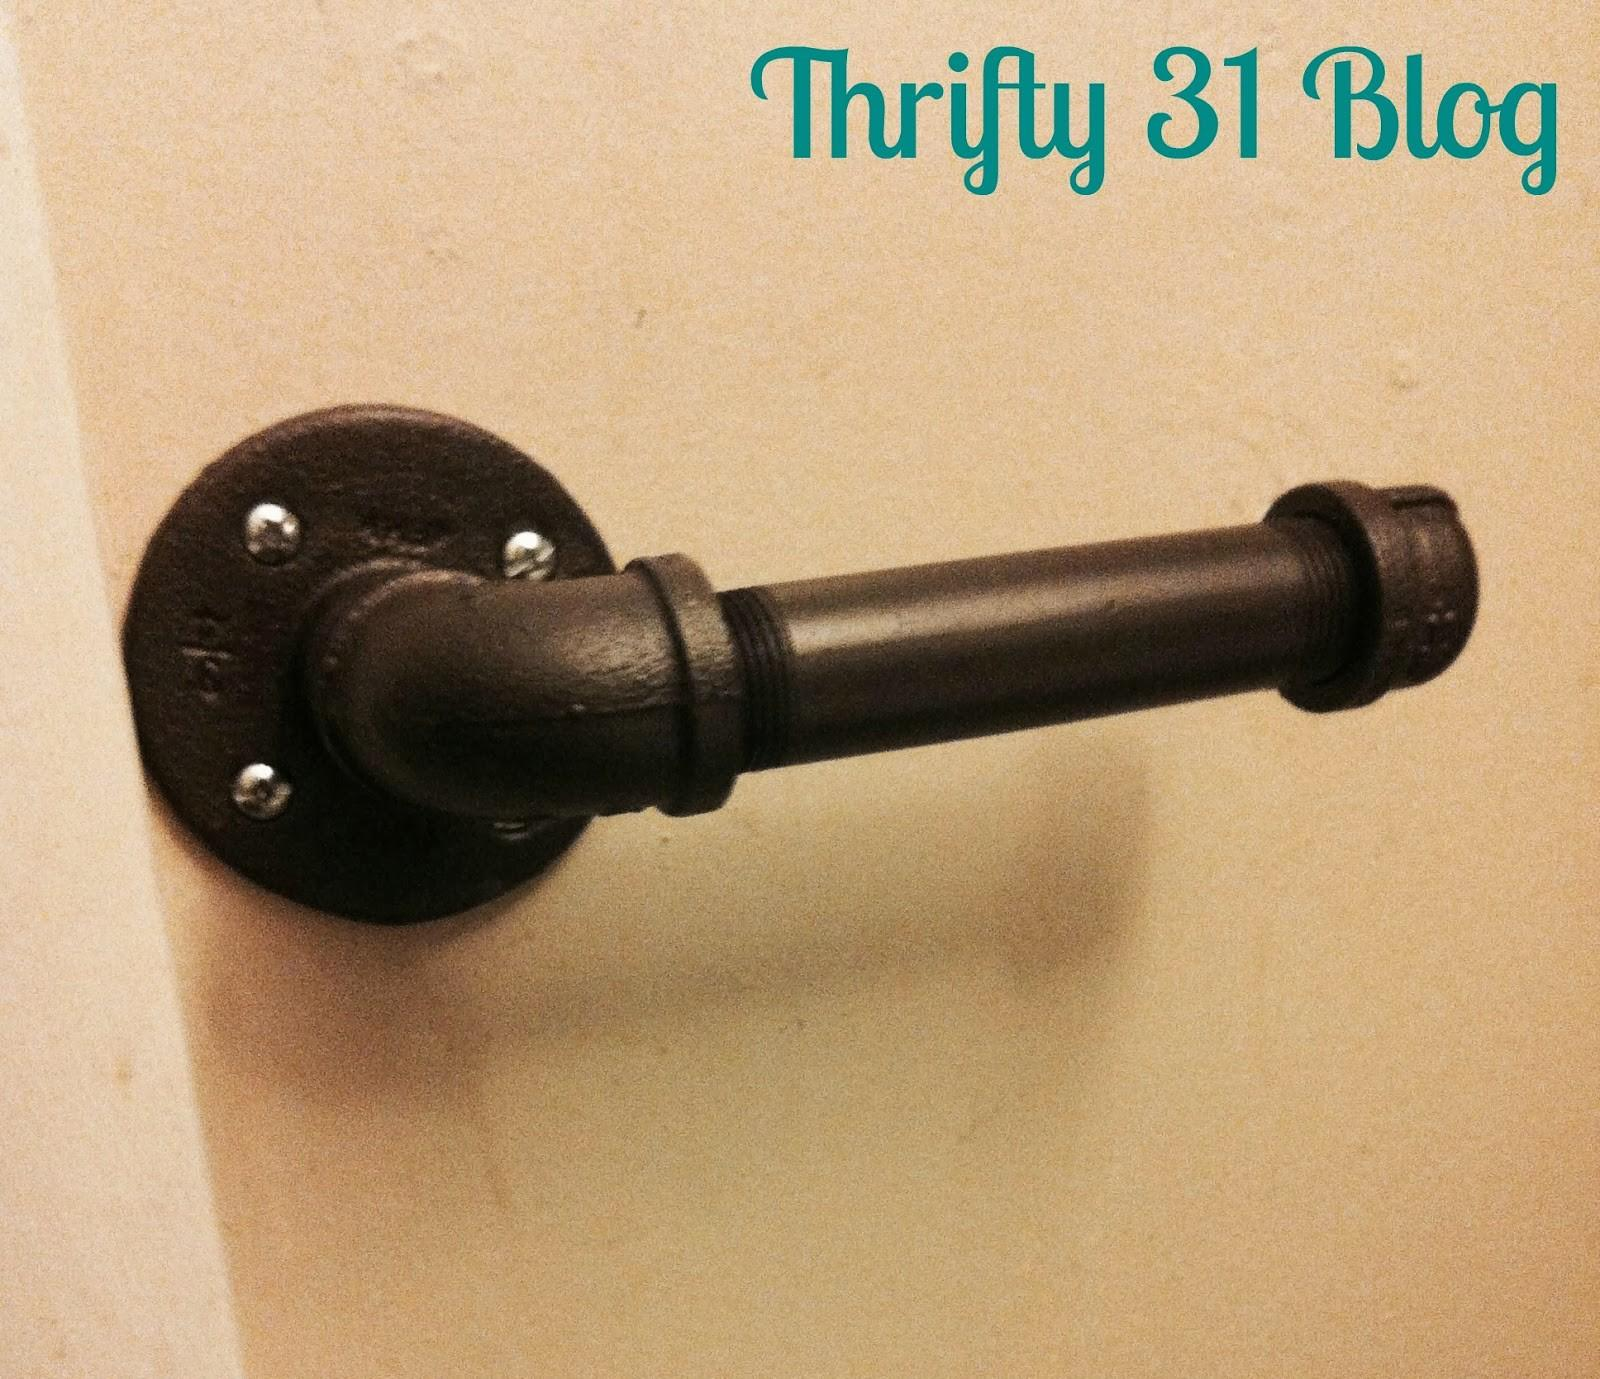 Thrifty Blog Rustic Industrial Toilet Paper Holder